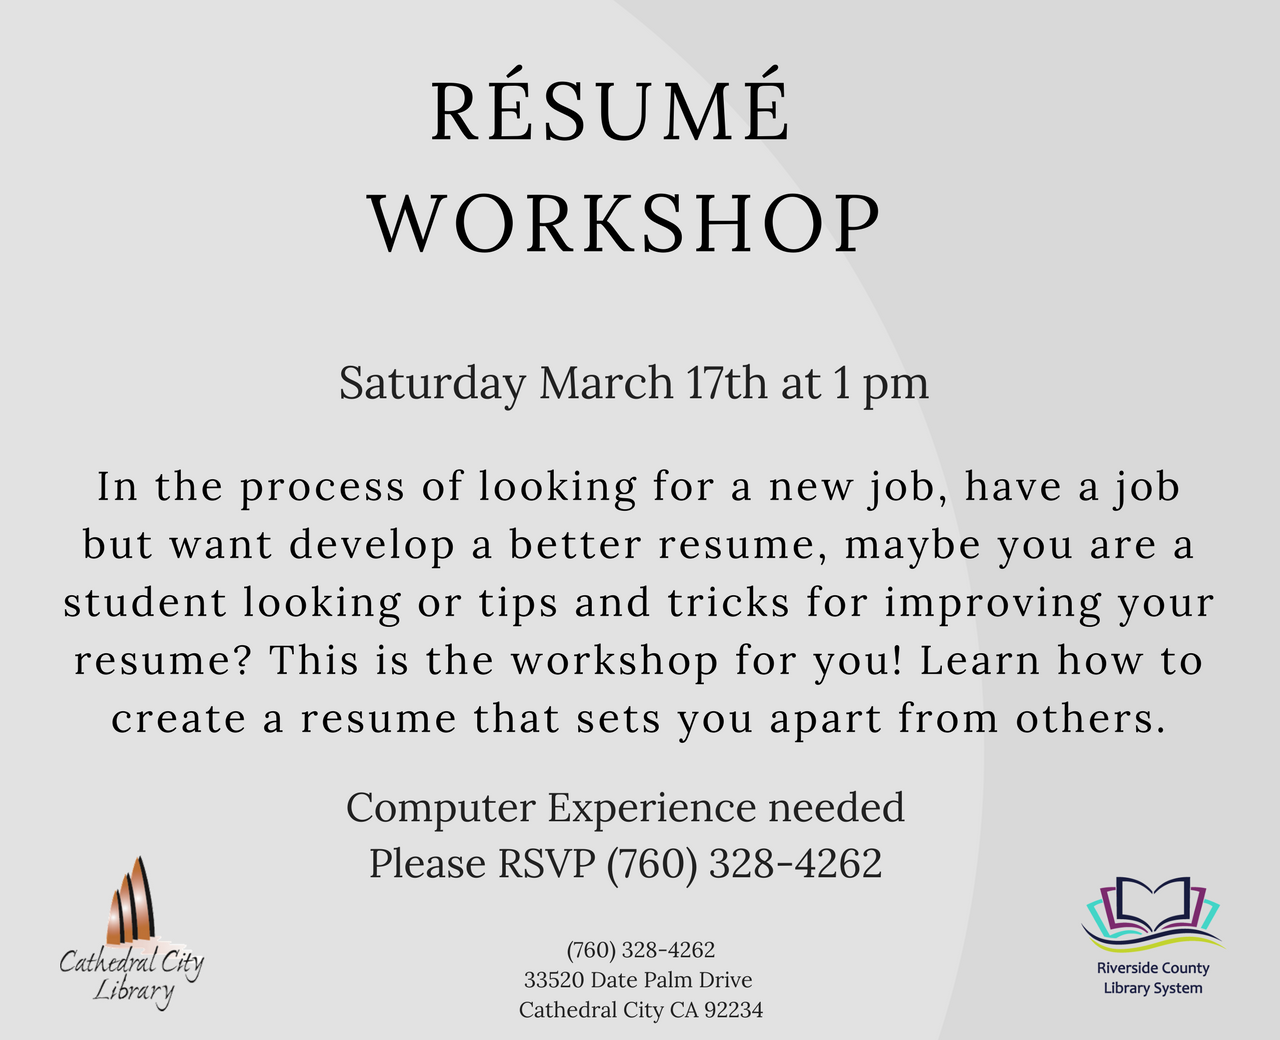 CATHEDRAL CITY LIBRARY- Resume Workshop